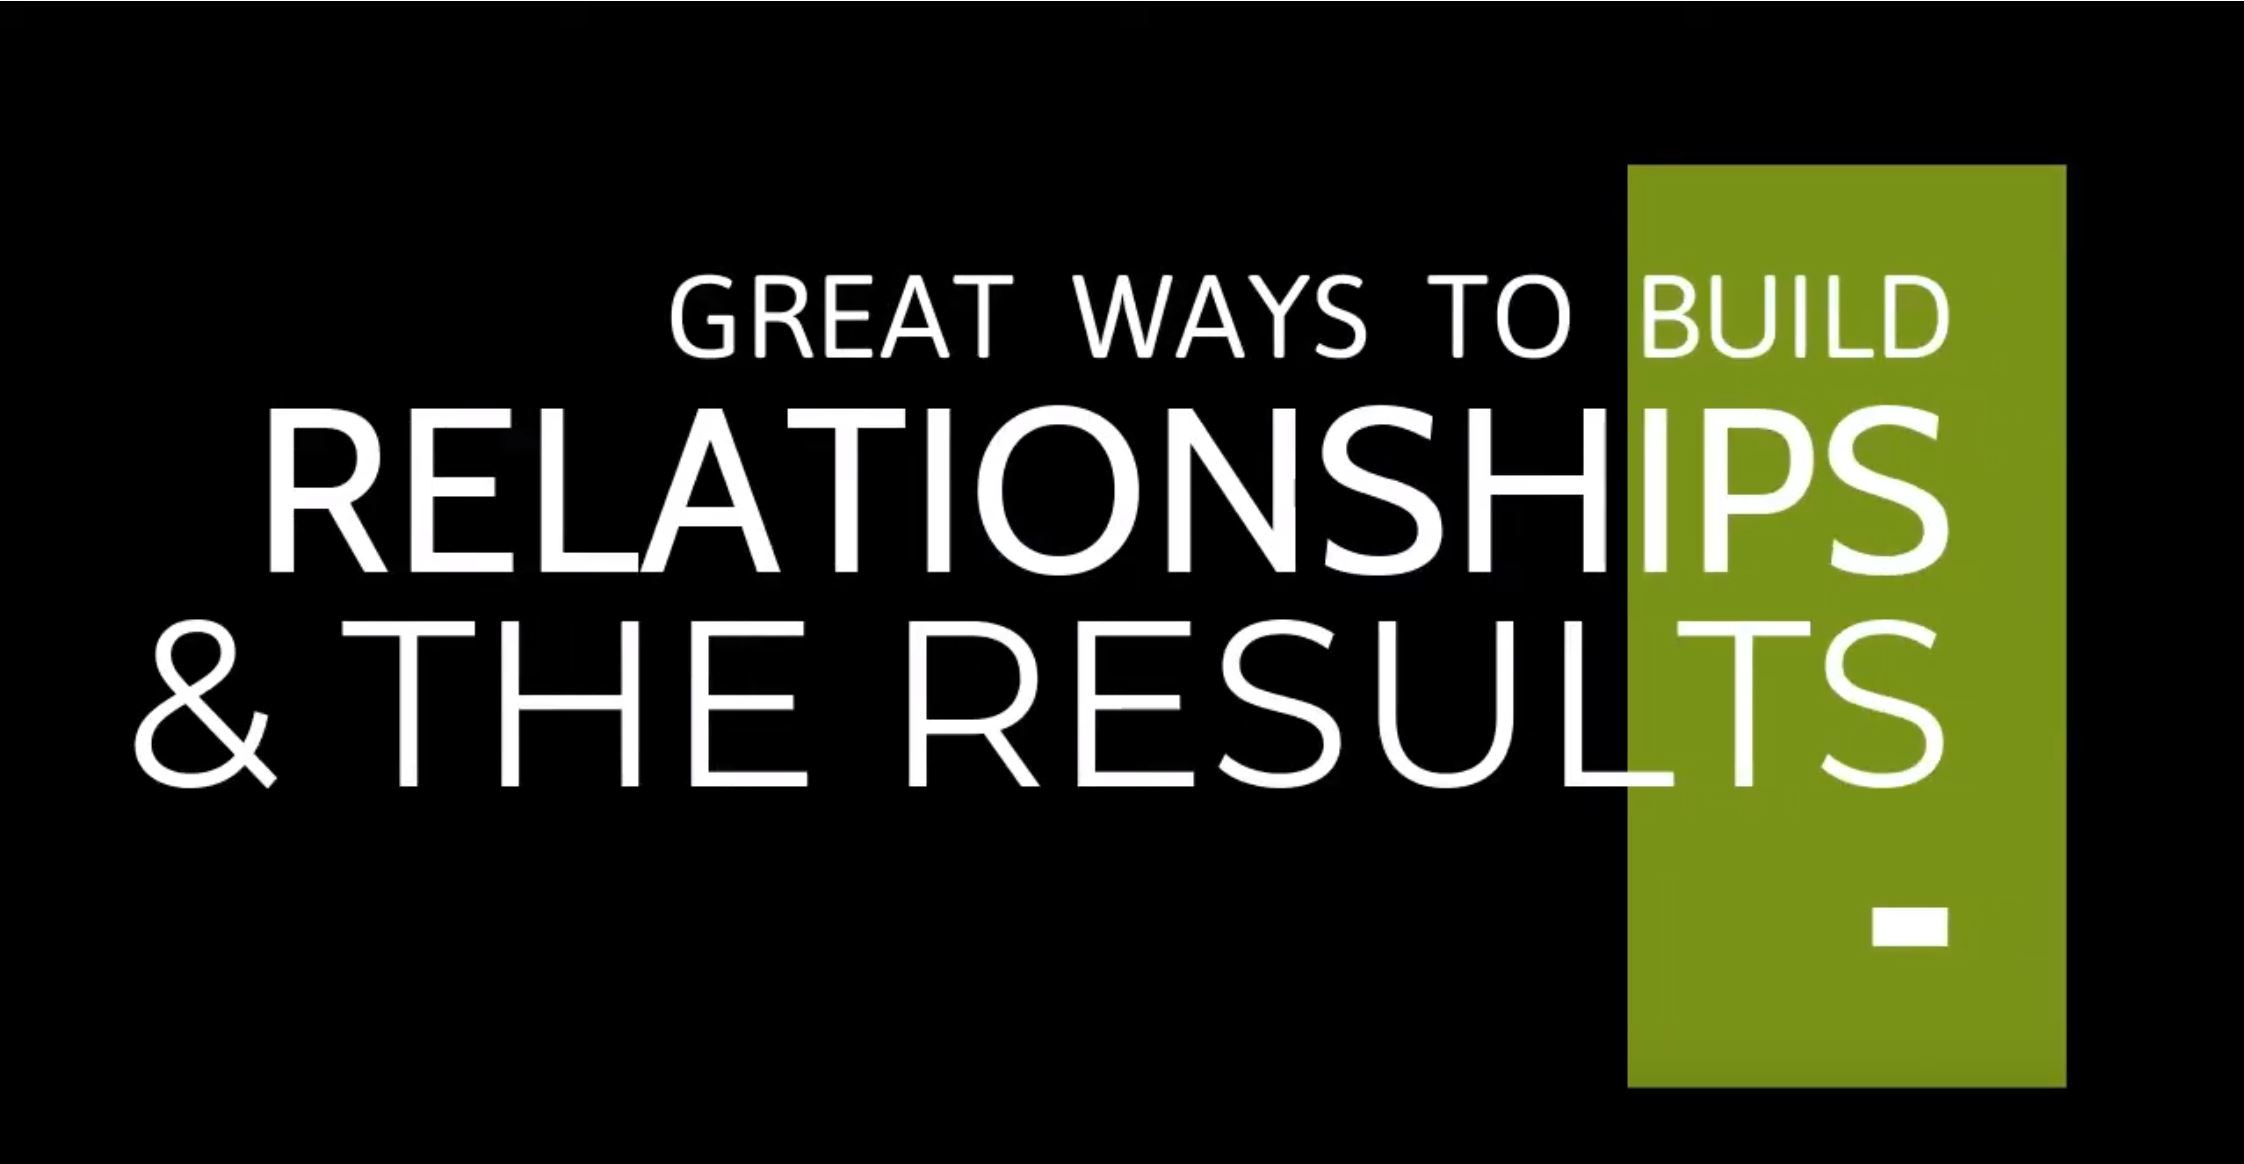 Great ways to build relationships- chris freeze